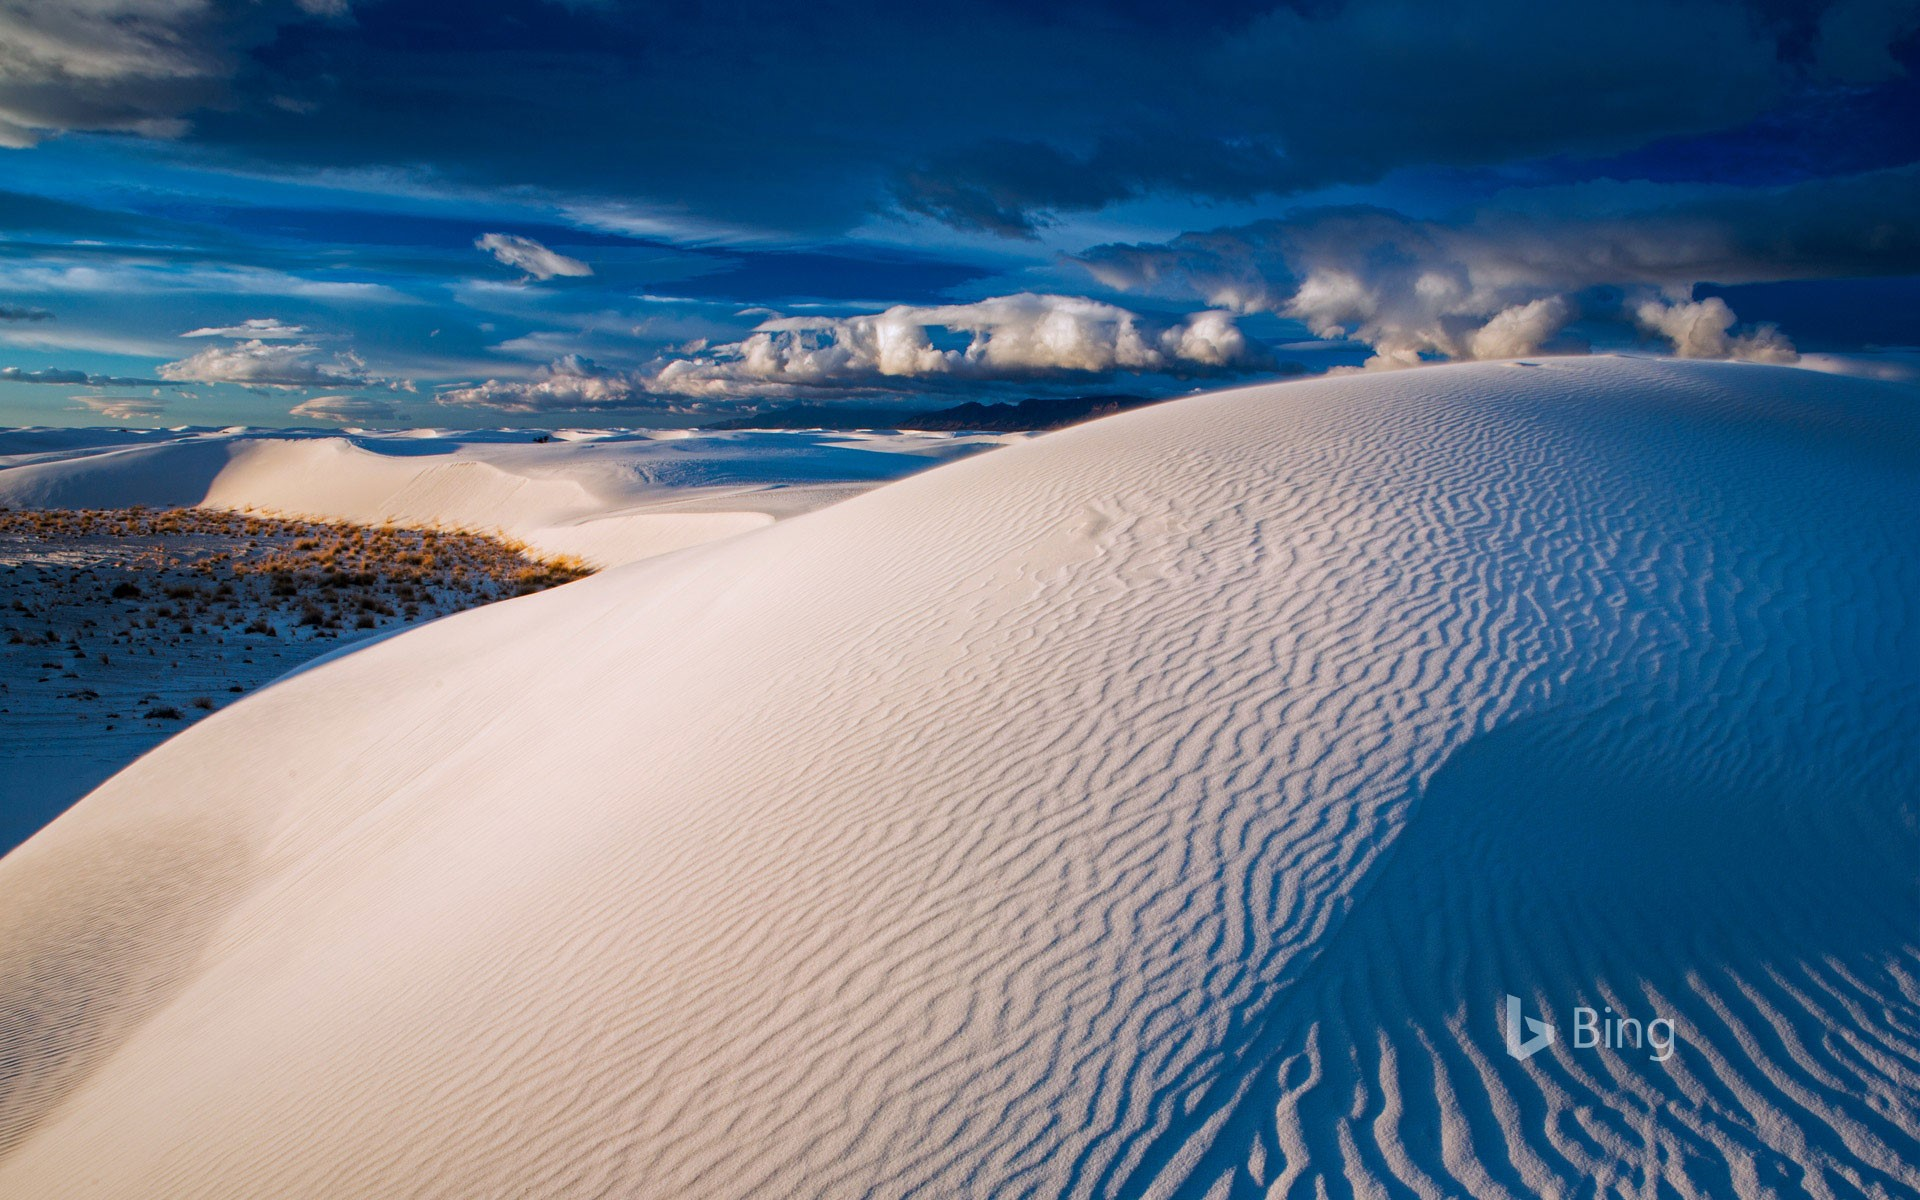 Gypsum sand dunes, White Sands National Park, New Mexico